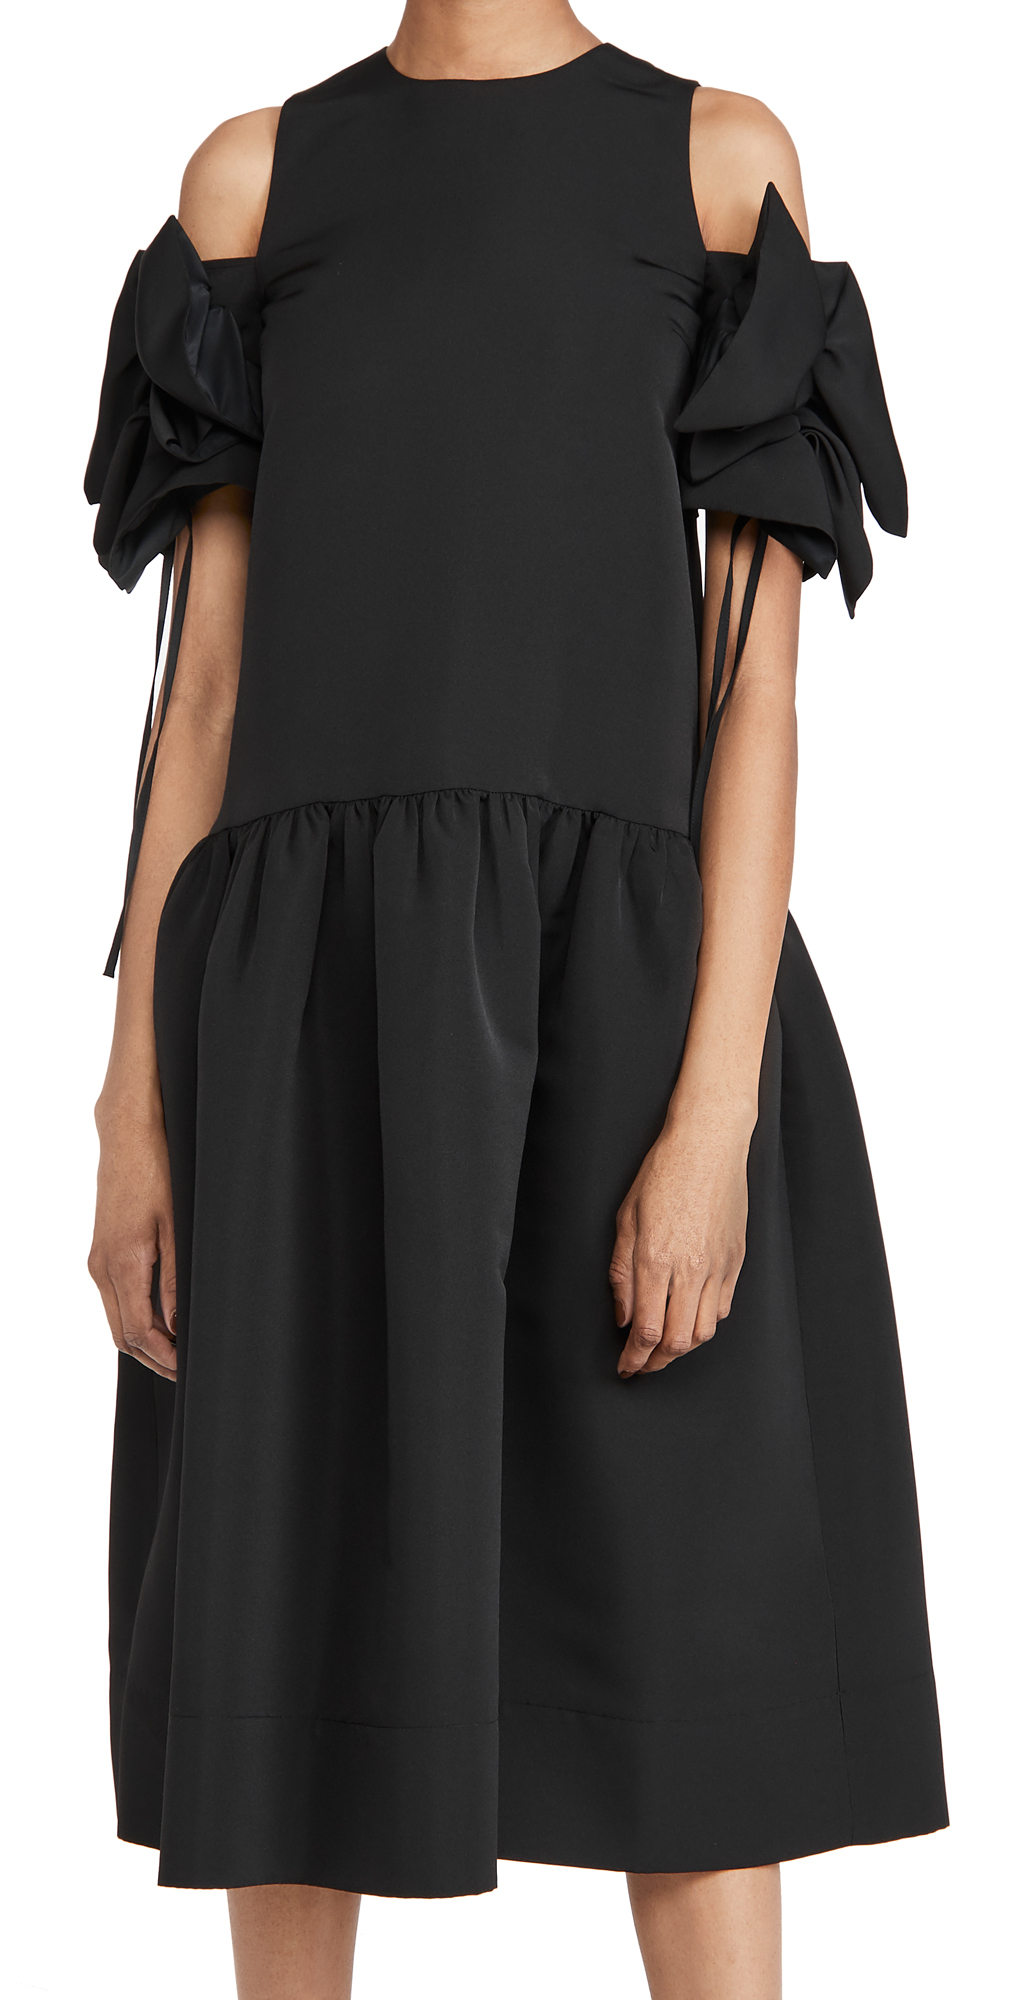 Victoria Victoria Beckham Gathered Detail Cold Shoulder Dress